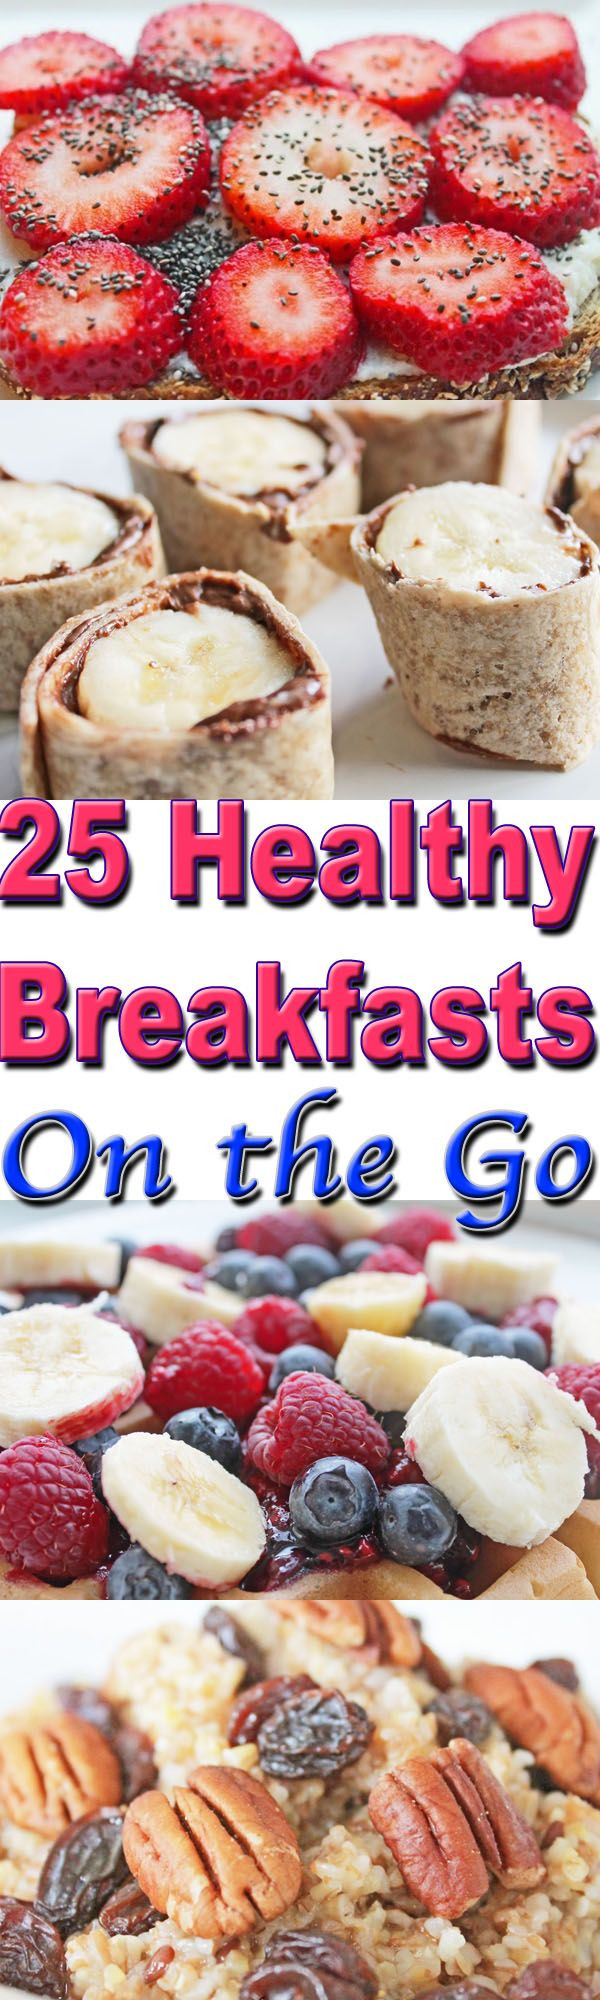 On The Go Healthy Breakfast  healthy breakfasts on the go collage 1